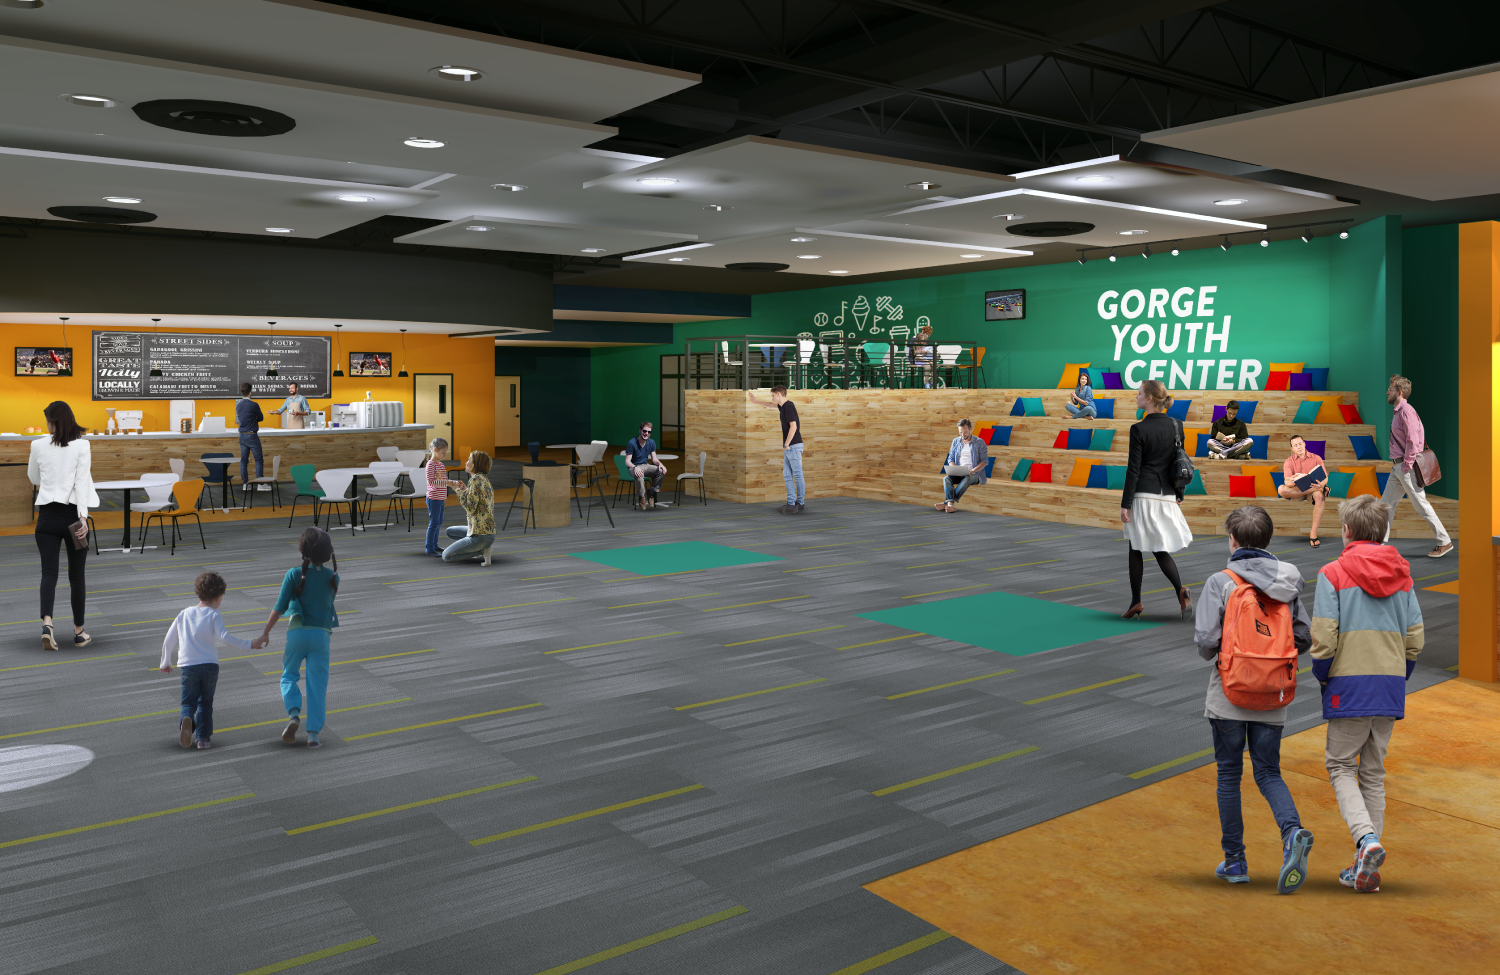 Gorge Youth Center interior_1.5x